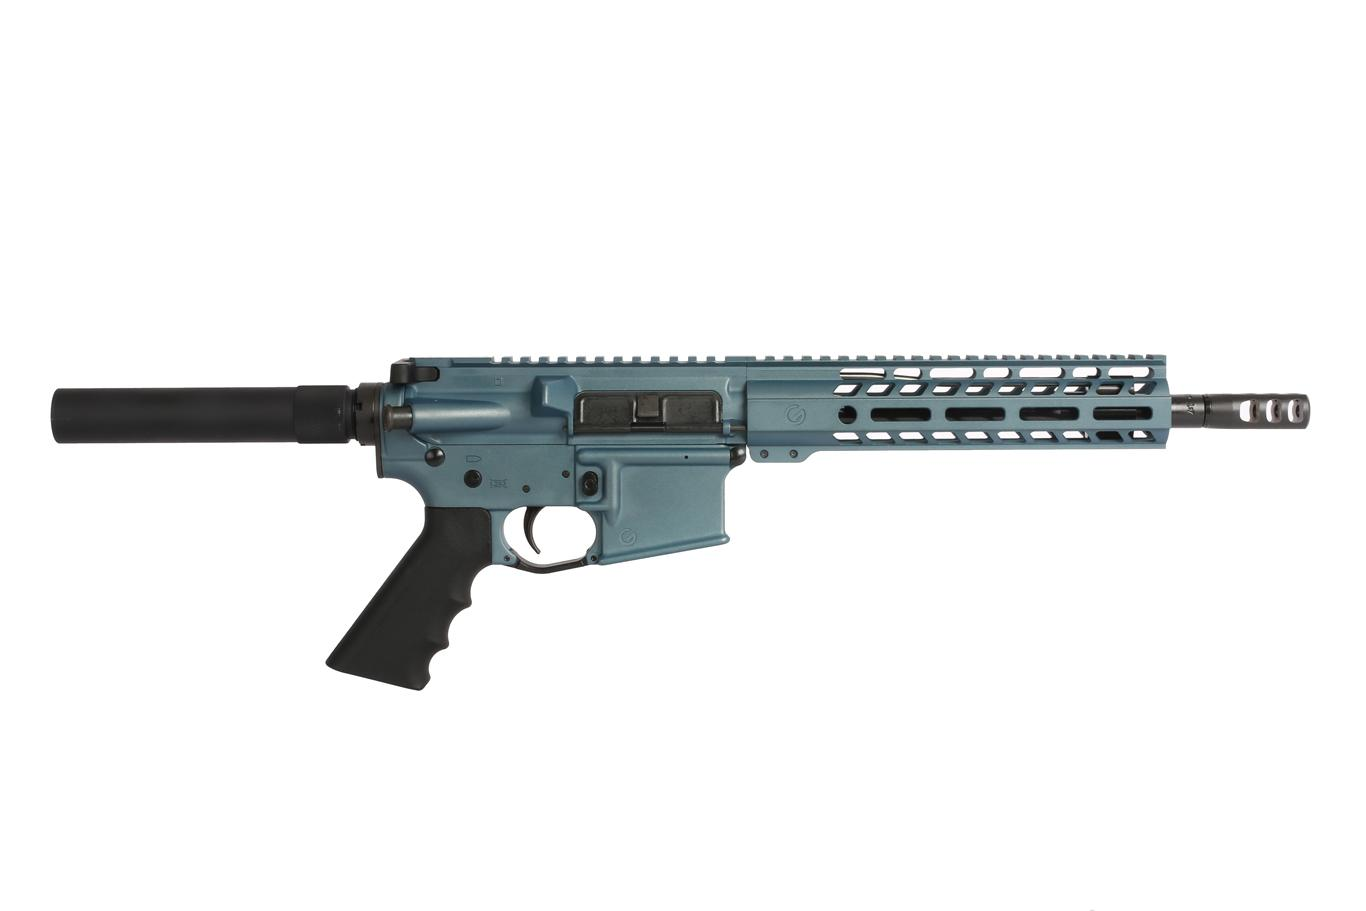 The Ghost Firearms AR-15 Pistol has a 10.5 inch 5.56 Barrel with a Carbine Length gas system